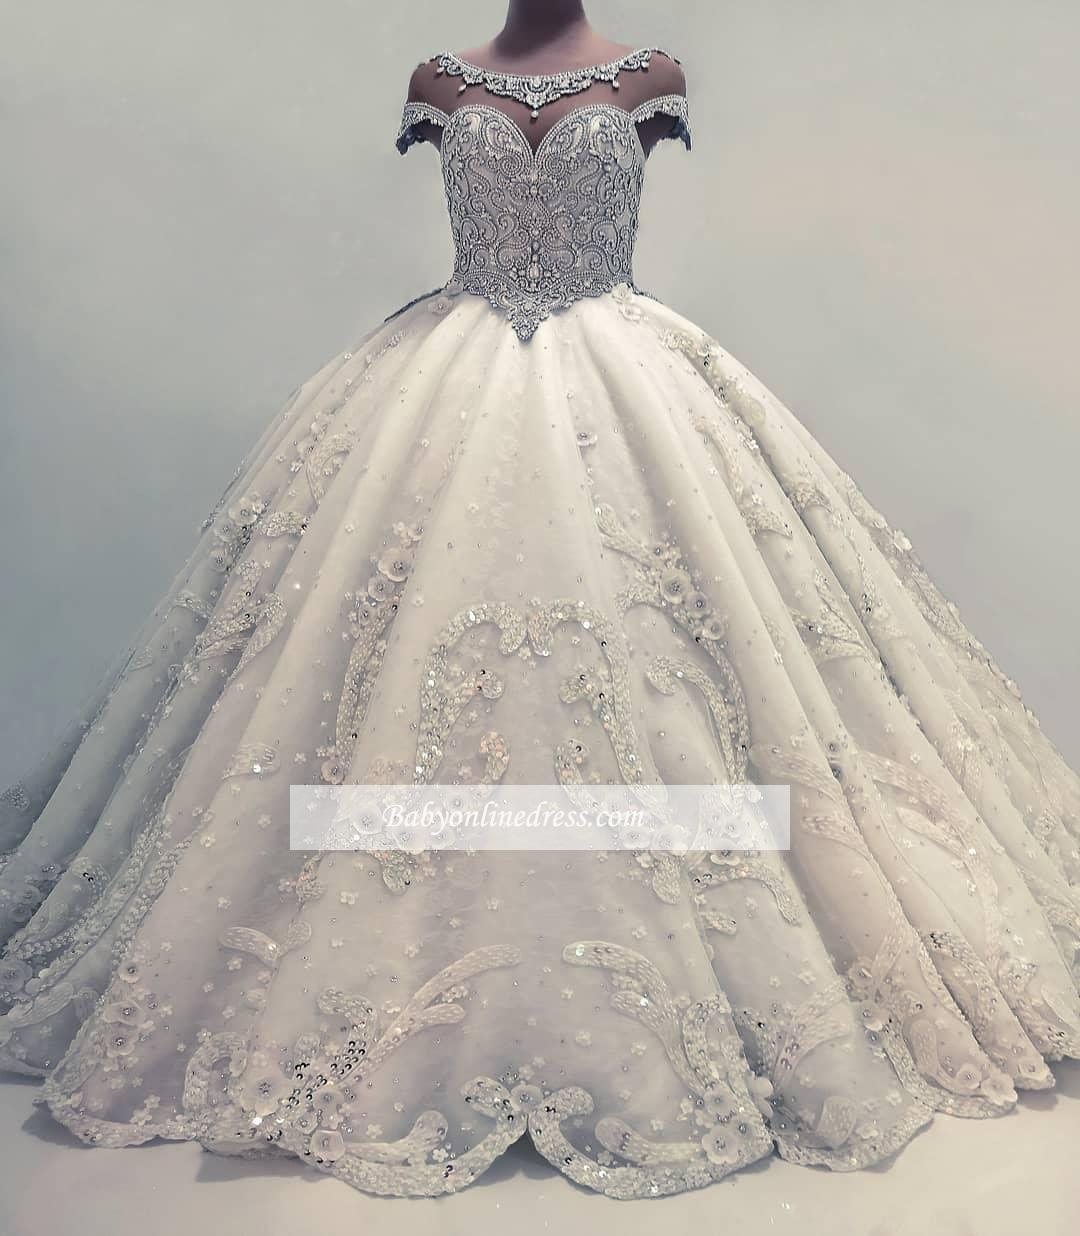 Sparkly Crystals Beaded Ball Gown Wedding Dresses Sheer Scoop Neck Short Sleeves Appliques Long Wedding Gowns Plus Size